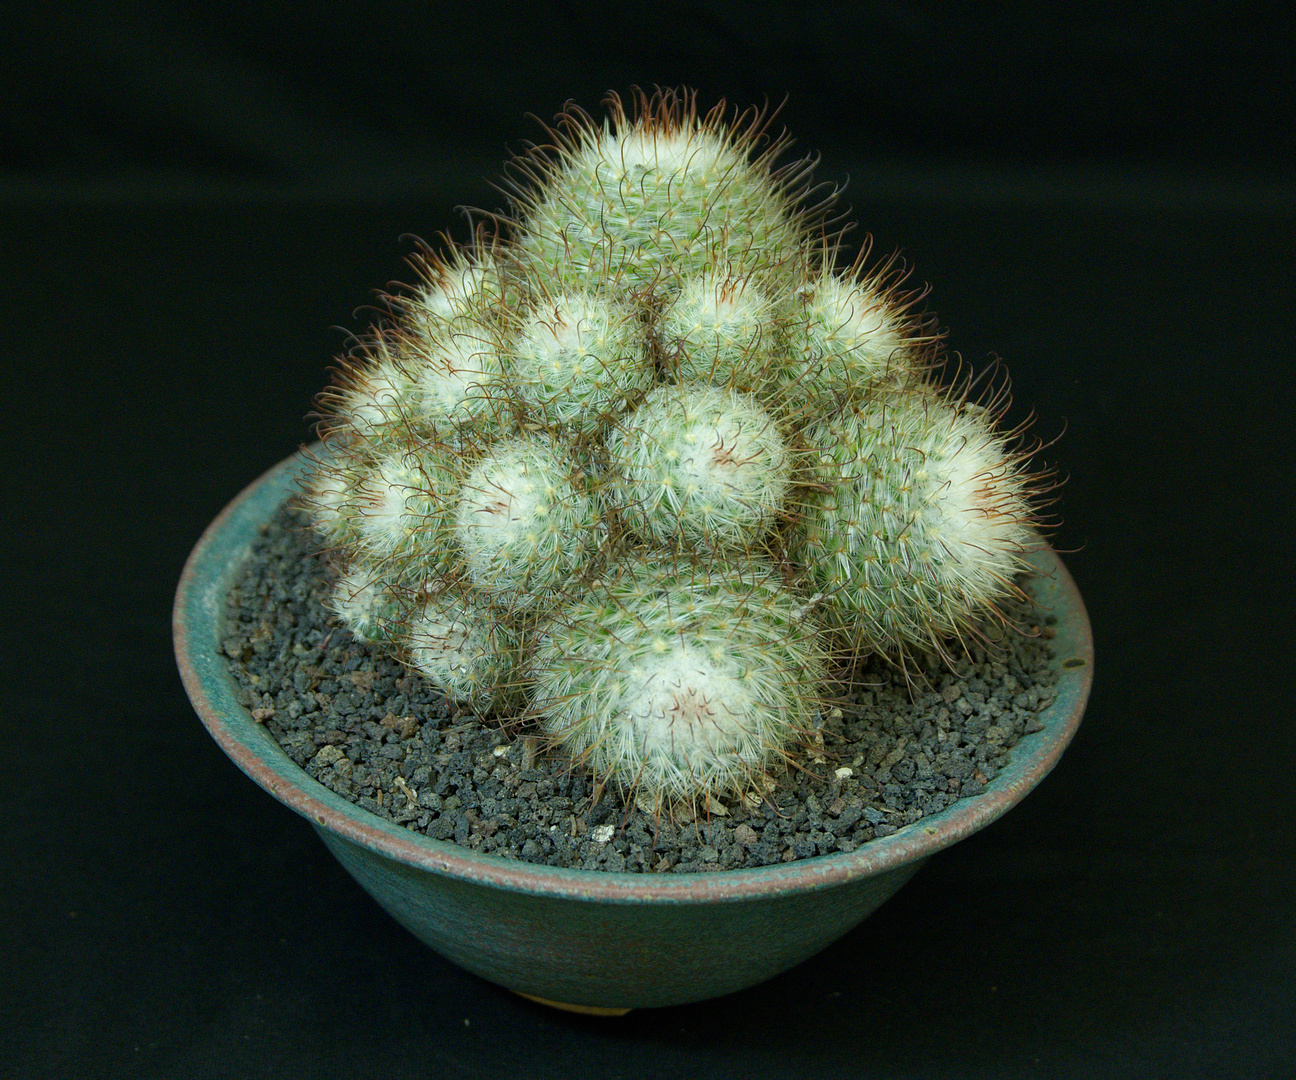 SCCSS 2017 May - Winner Intermediate Cactus - Dale LaForest - Mammillaria bocasana